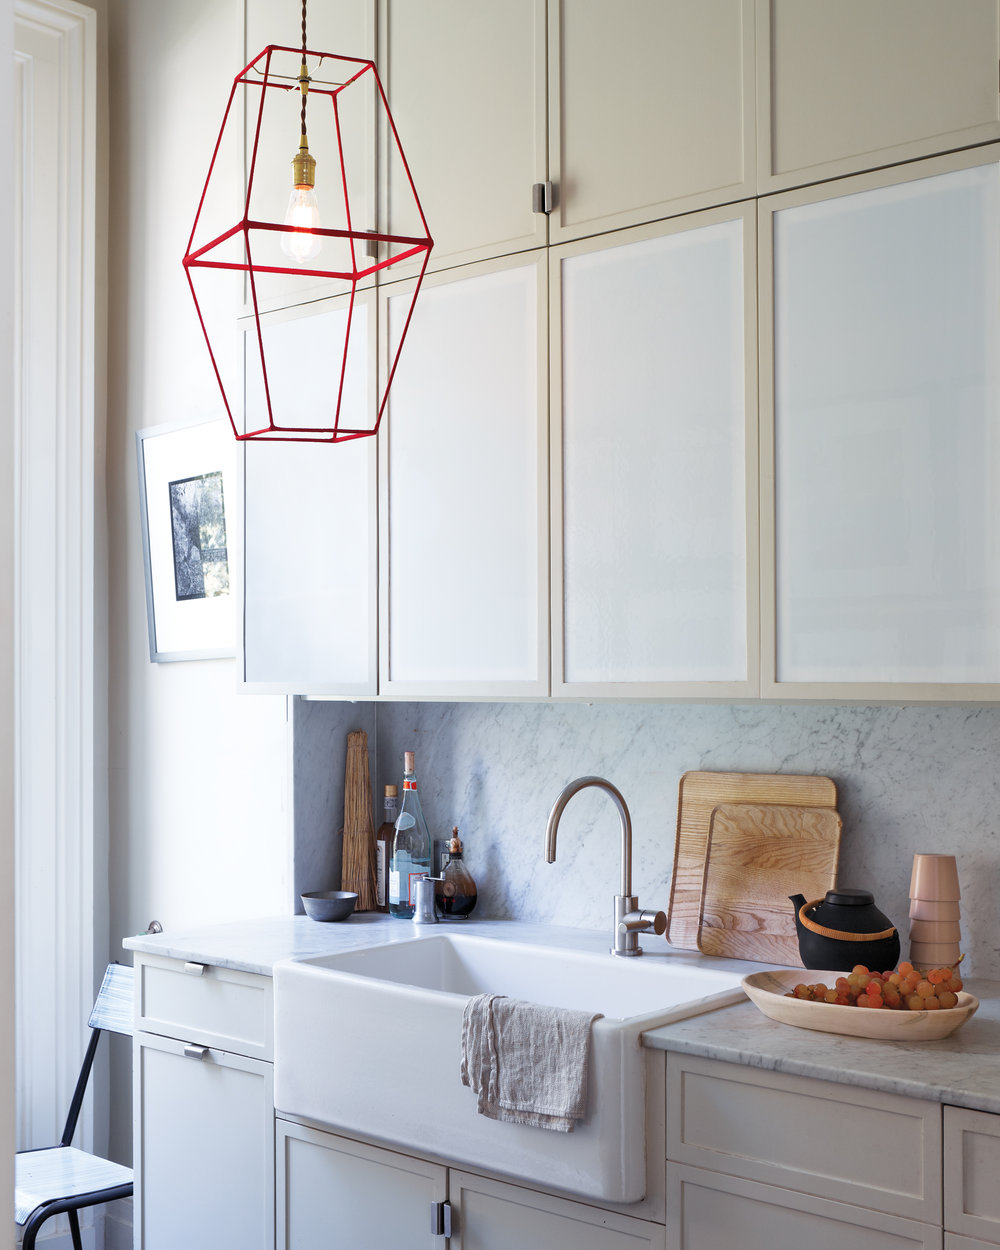 D110260-kitchen-redlamp-035-notowel.jpg